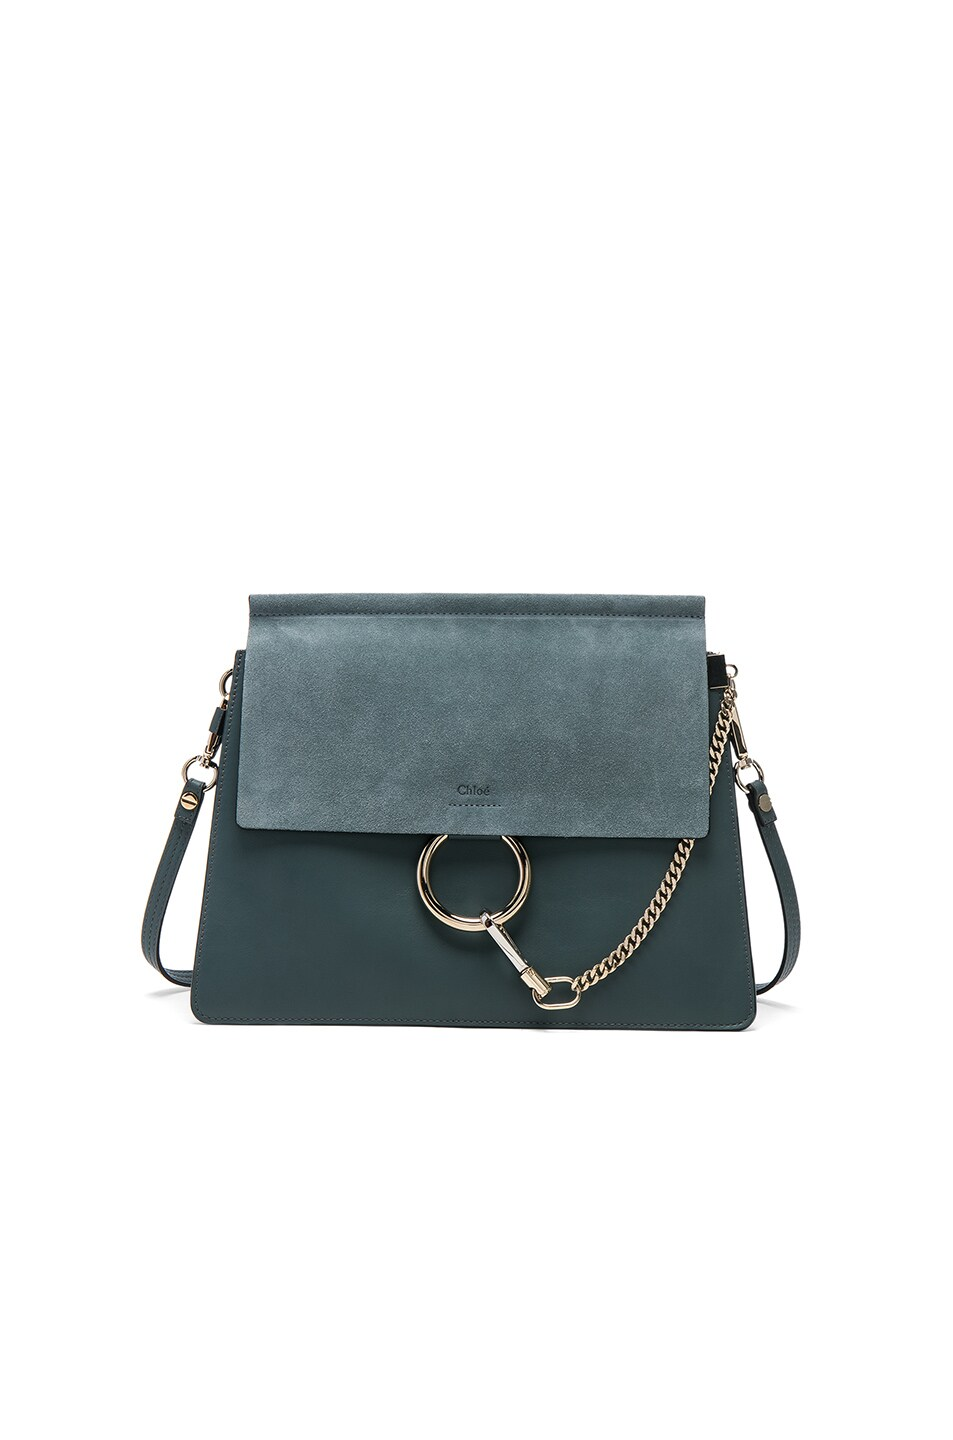 Image 1 of Chloe Medium Faye Suede & Calfskin Bag in Cloudy Blue